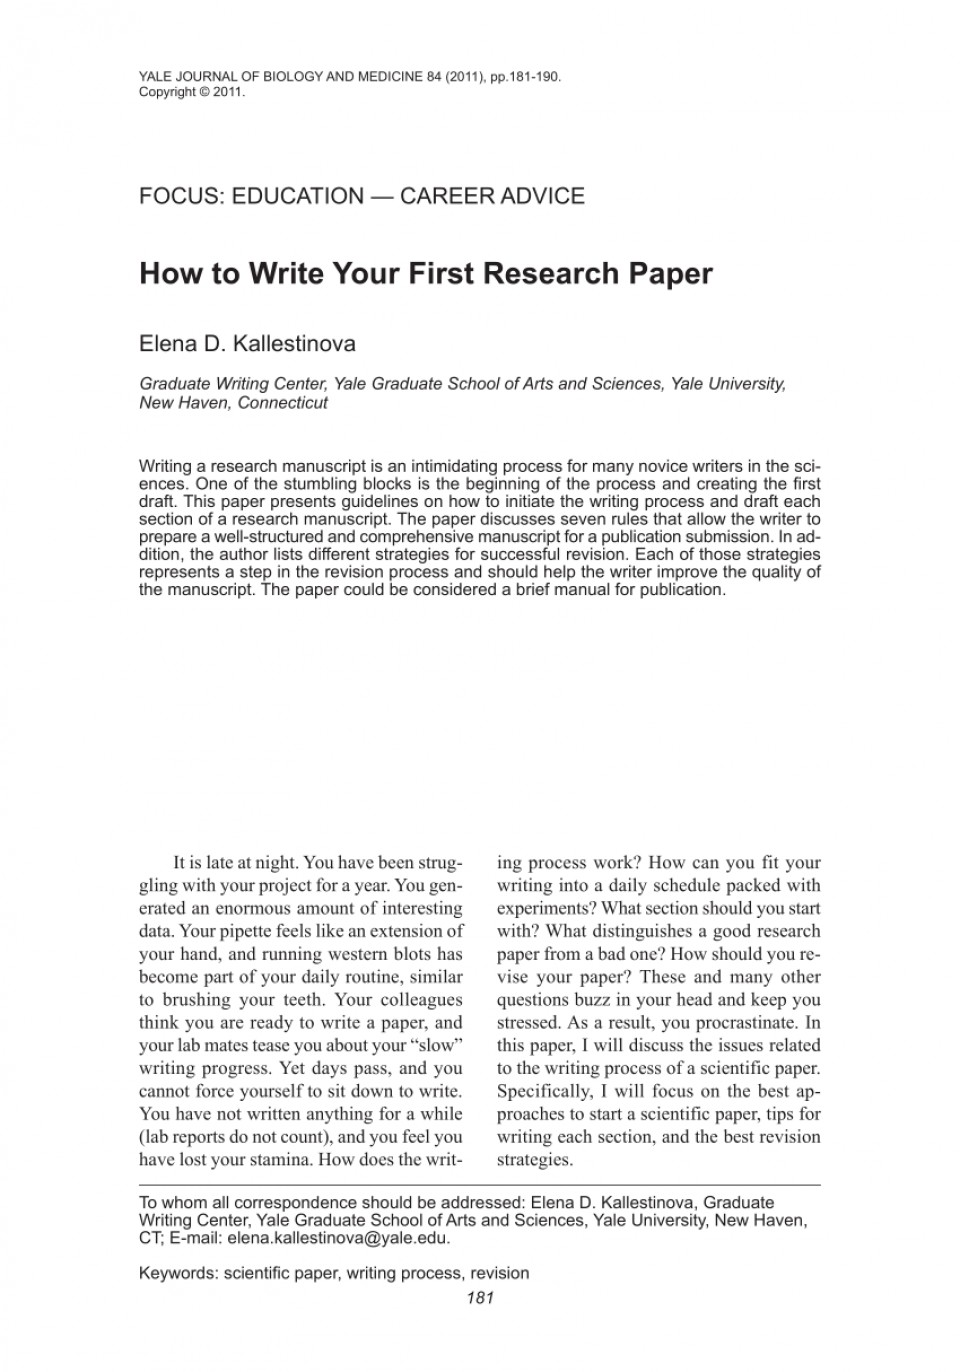 003 How To Write Research Paper Frightening A Thesis Driven Proposal Apa 960